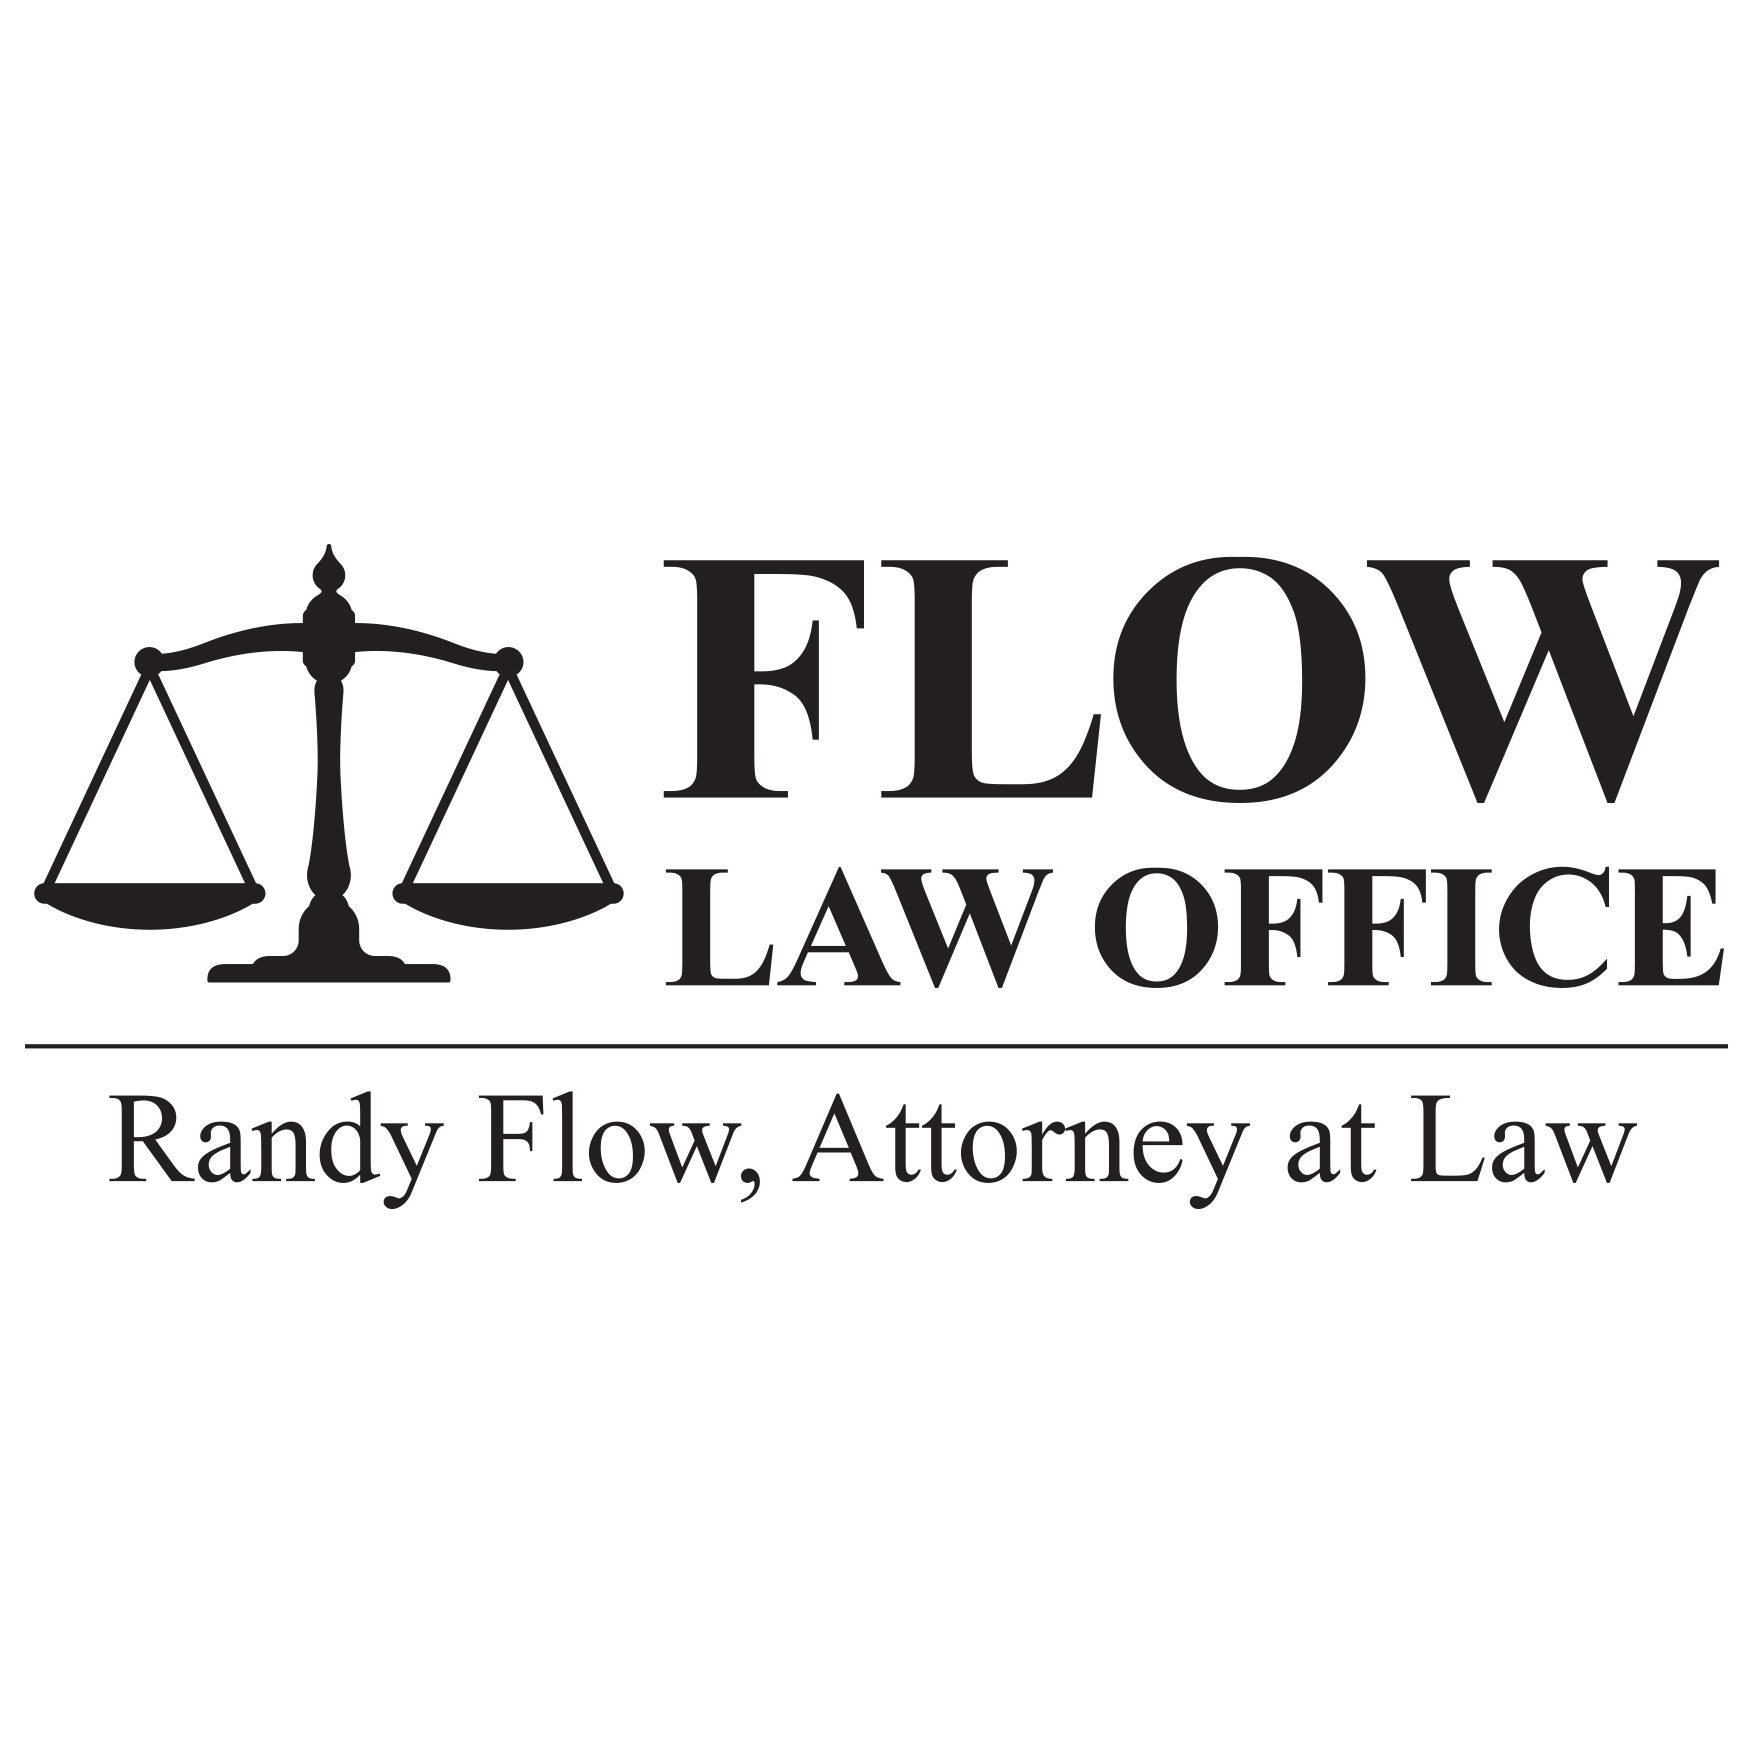 Flow Law Office - Fulton, MO 65251 - (573)642-2121 | ShowMeLocal.com